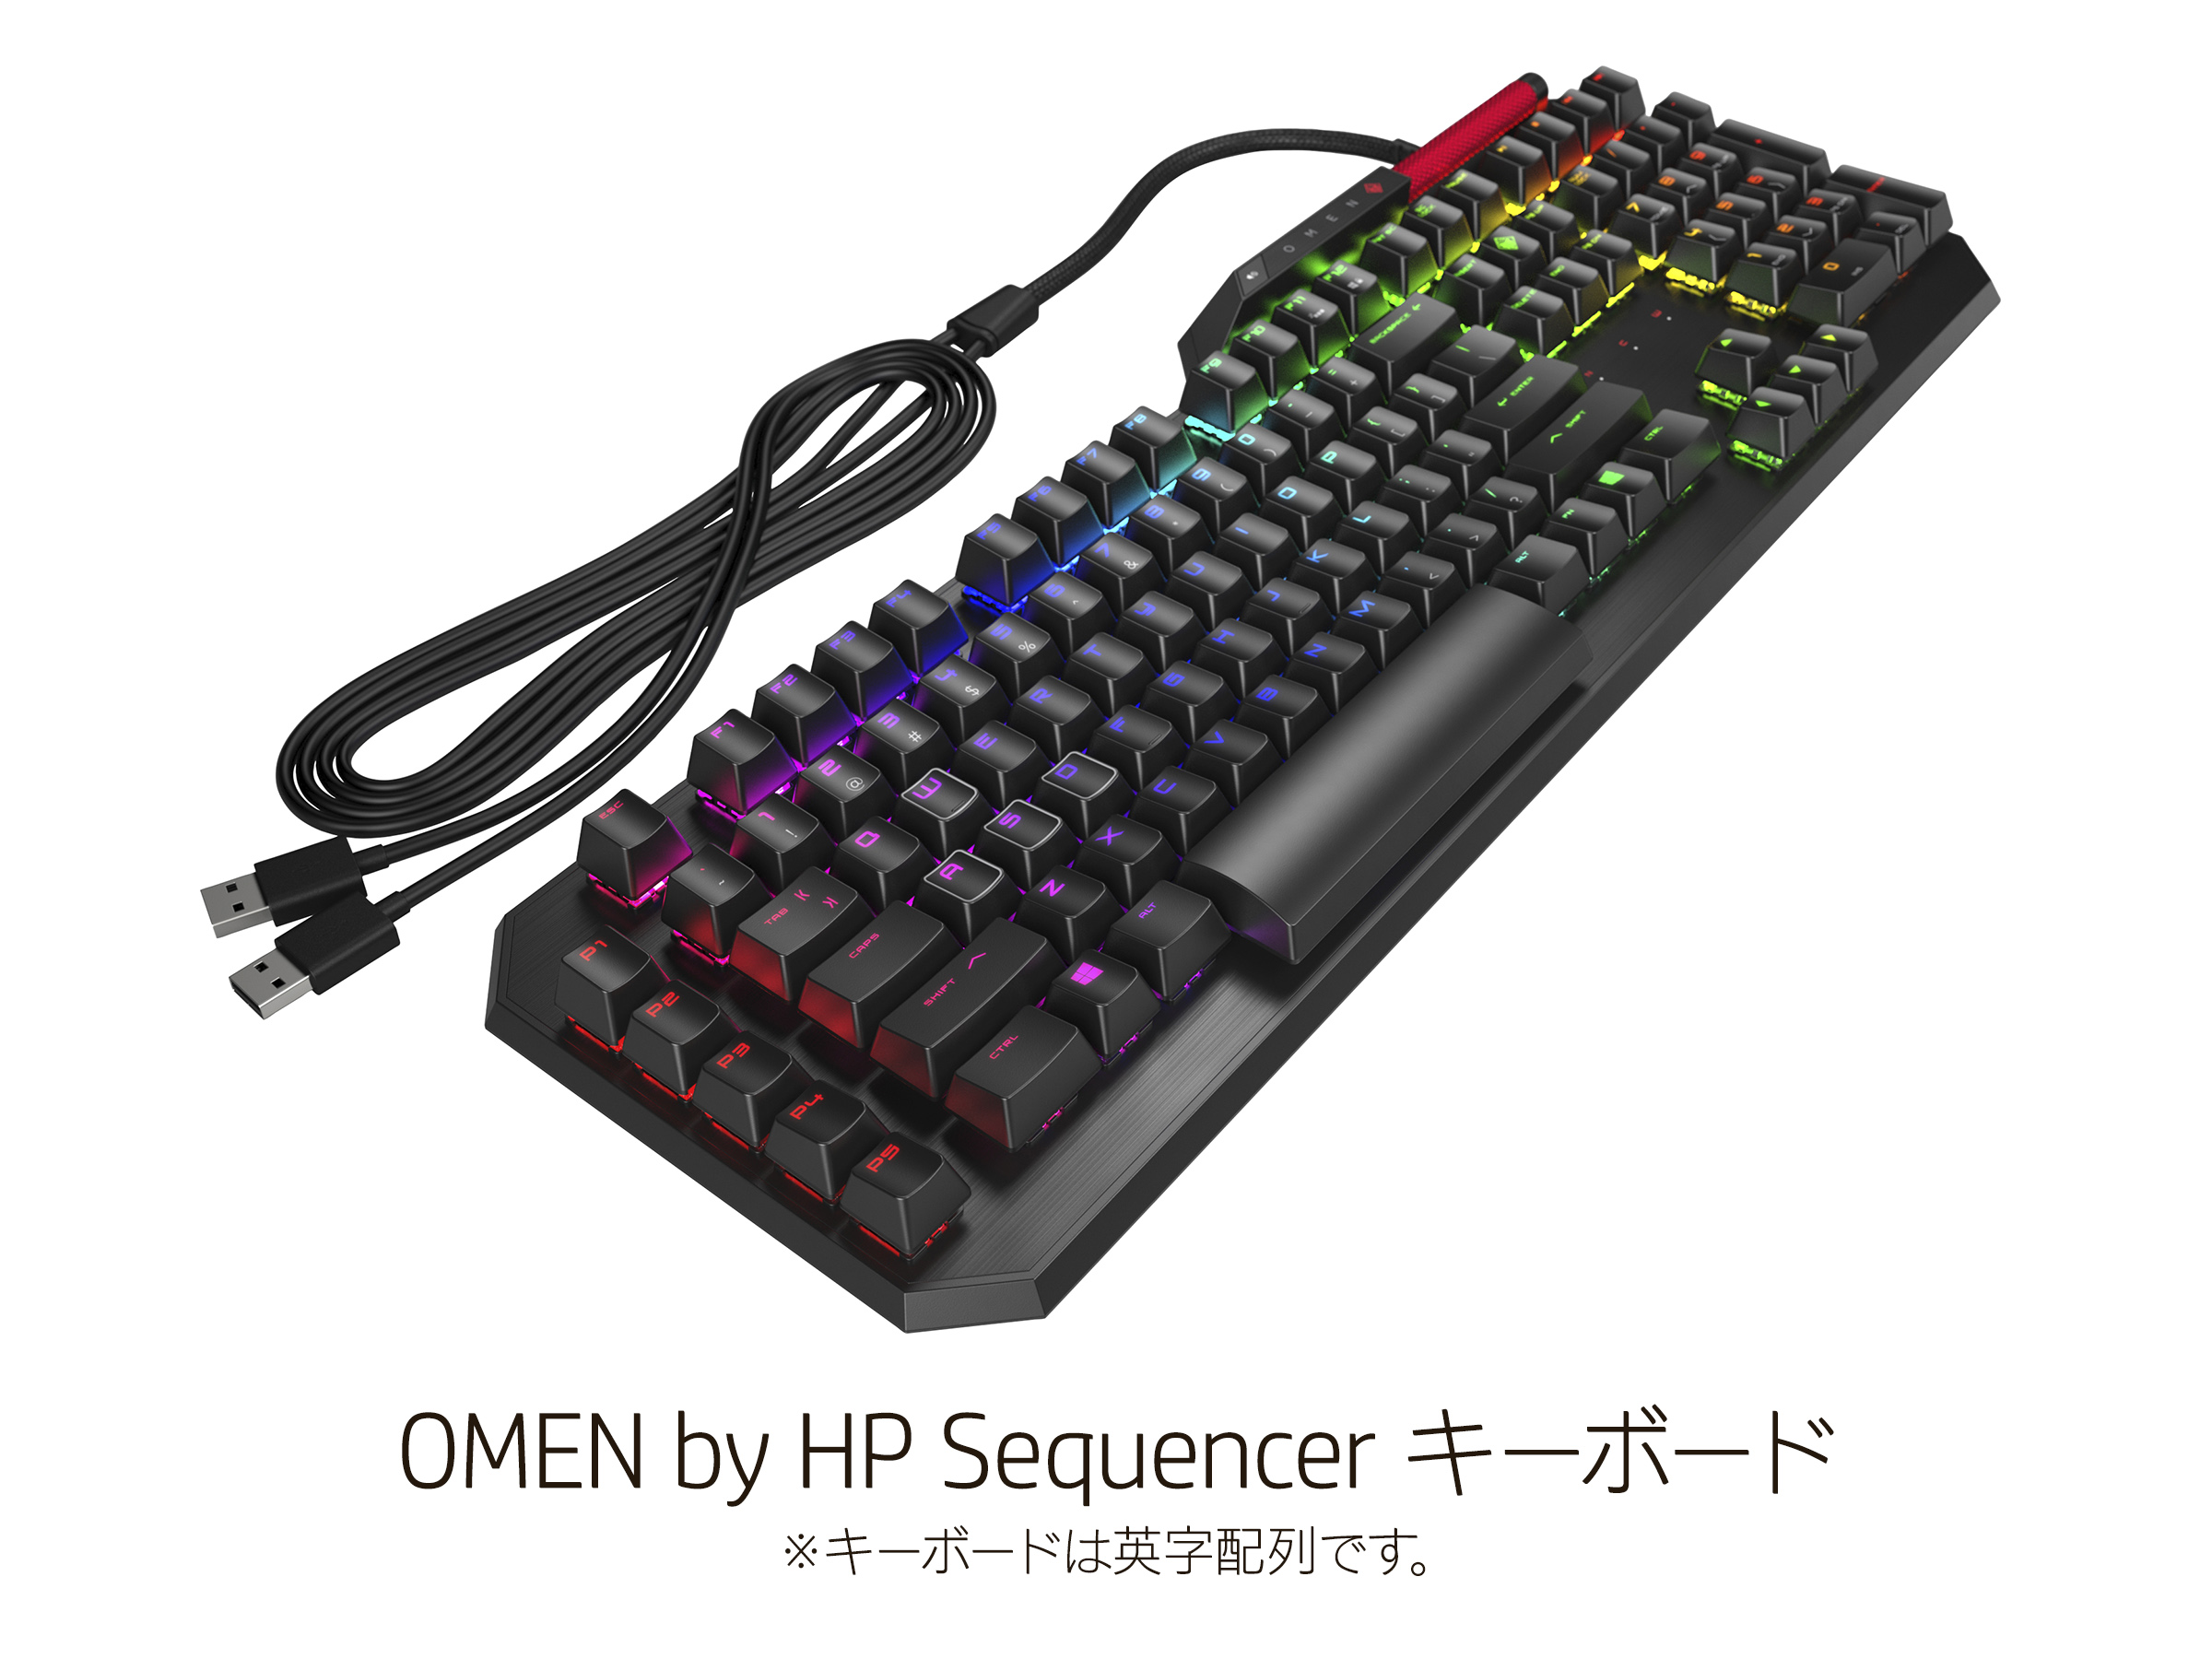 OMEN by HP Sequencer キーボード